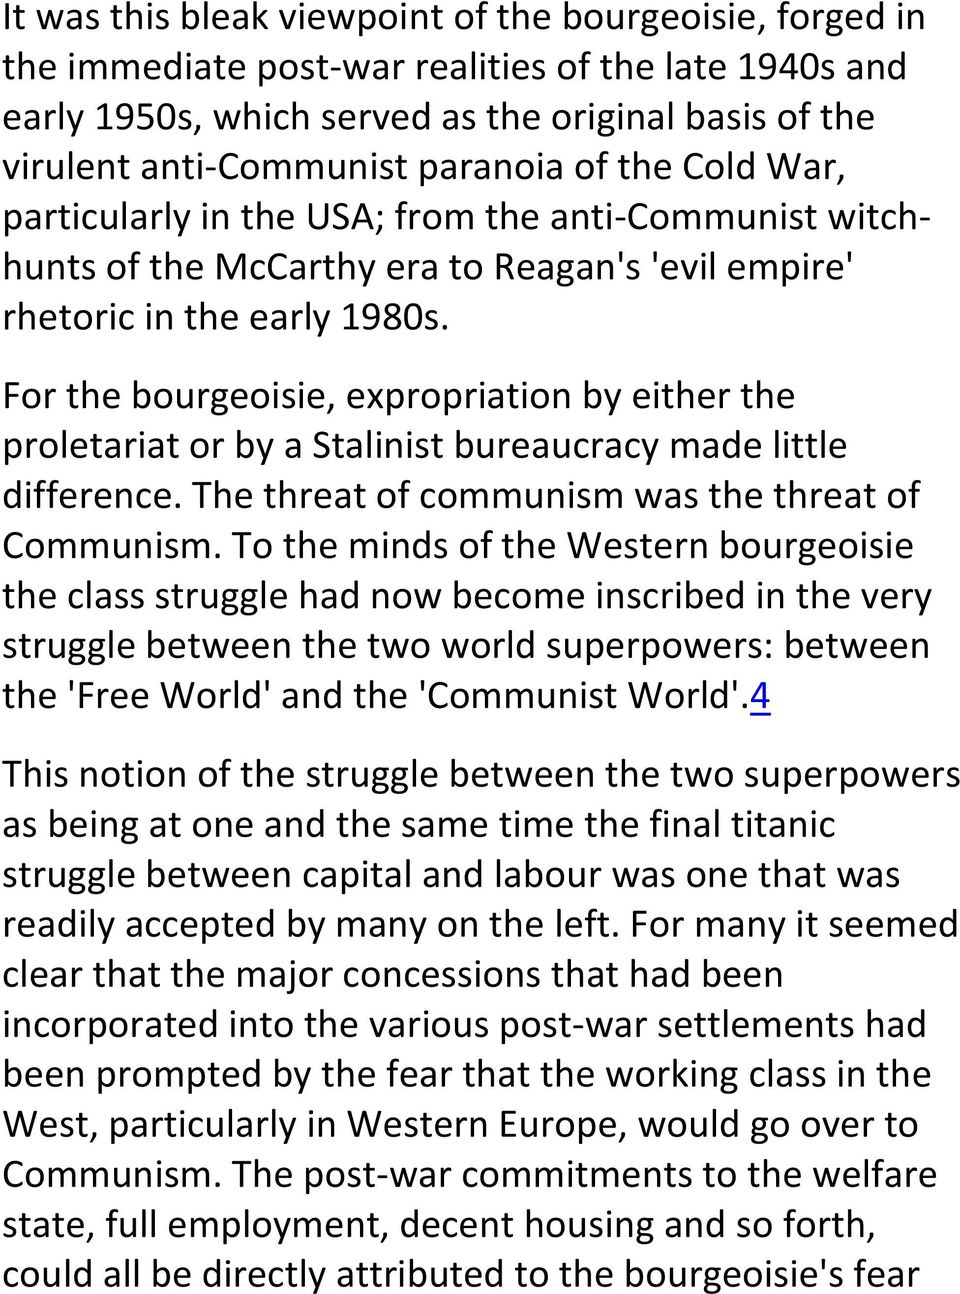 For the bourgeoisie, expropriation by either the proletariat or by a Stalinist bureaucracy made little difference. The threat of communism was the threat of Communism.